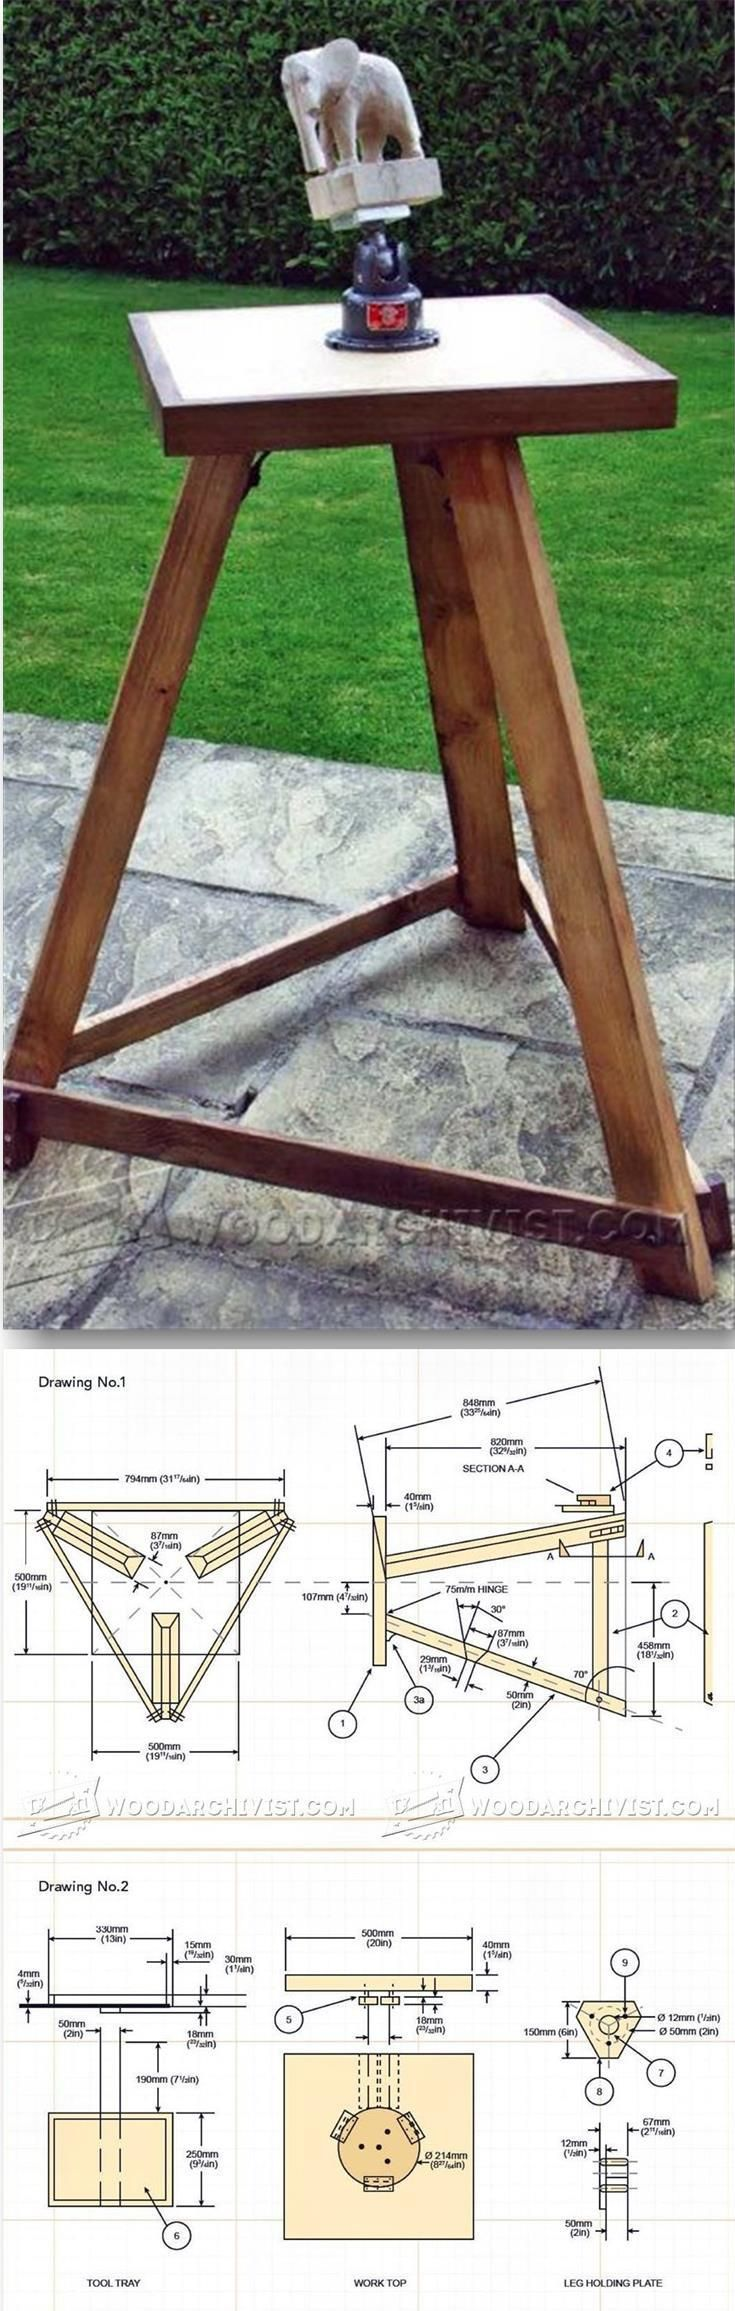 Wooden horse patterns - Portable Carving Bench Plans Wood Carving Patterns And Techniques Woodarchivist Com